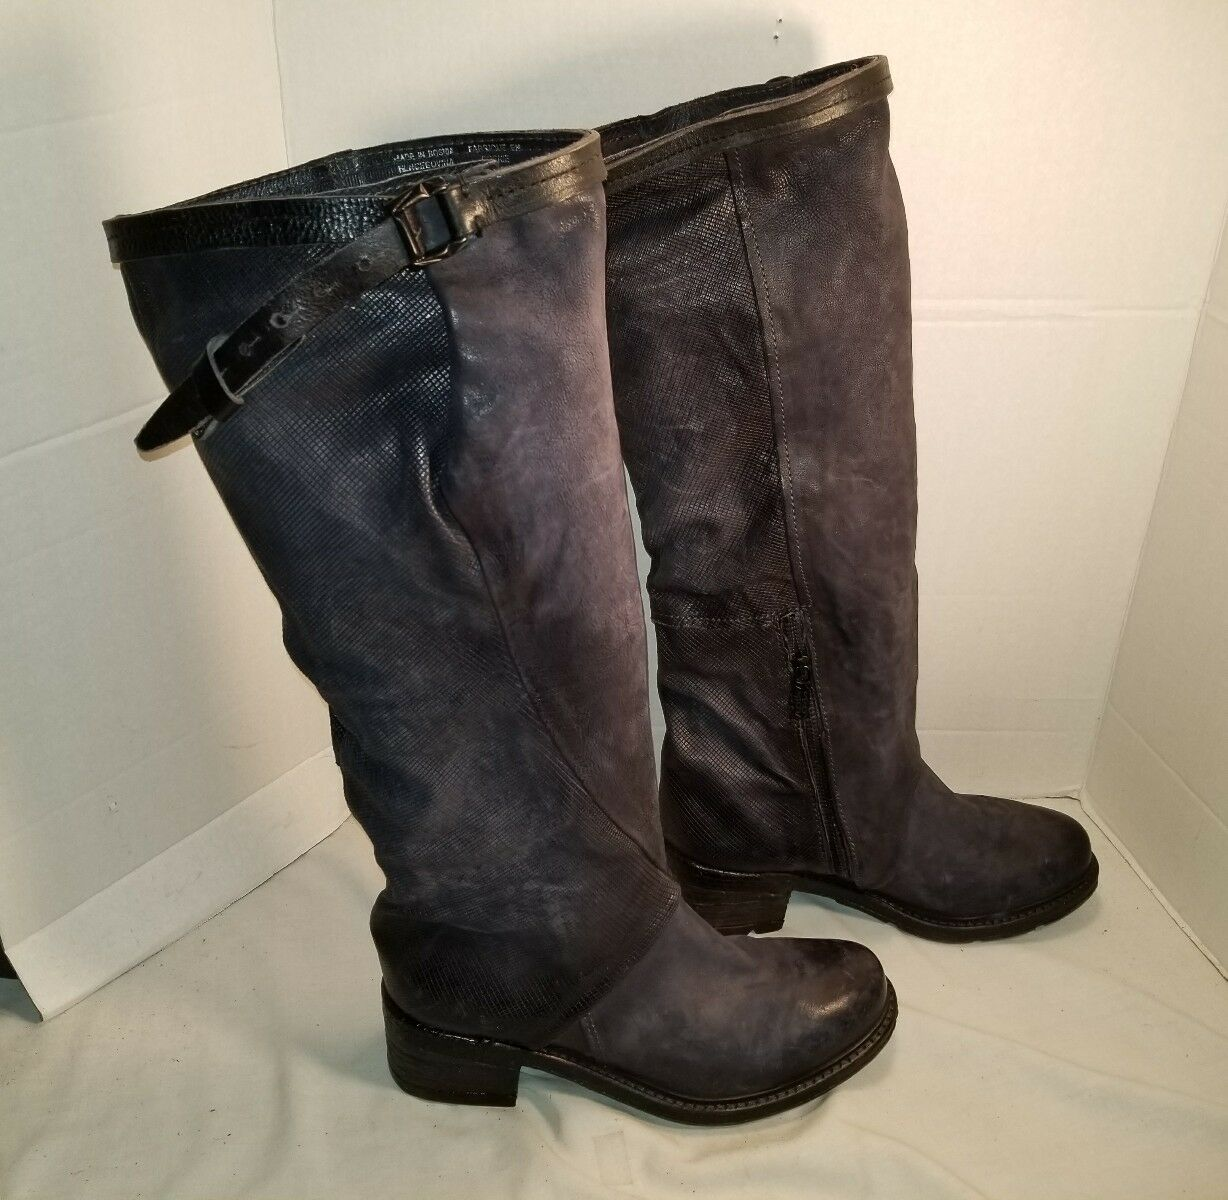 NEW AS 98 NOCTURNE noir LEATHER LEATHER LEATHER KNEE HIGH bottes US 10 EUR 40 20e826